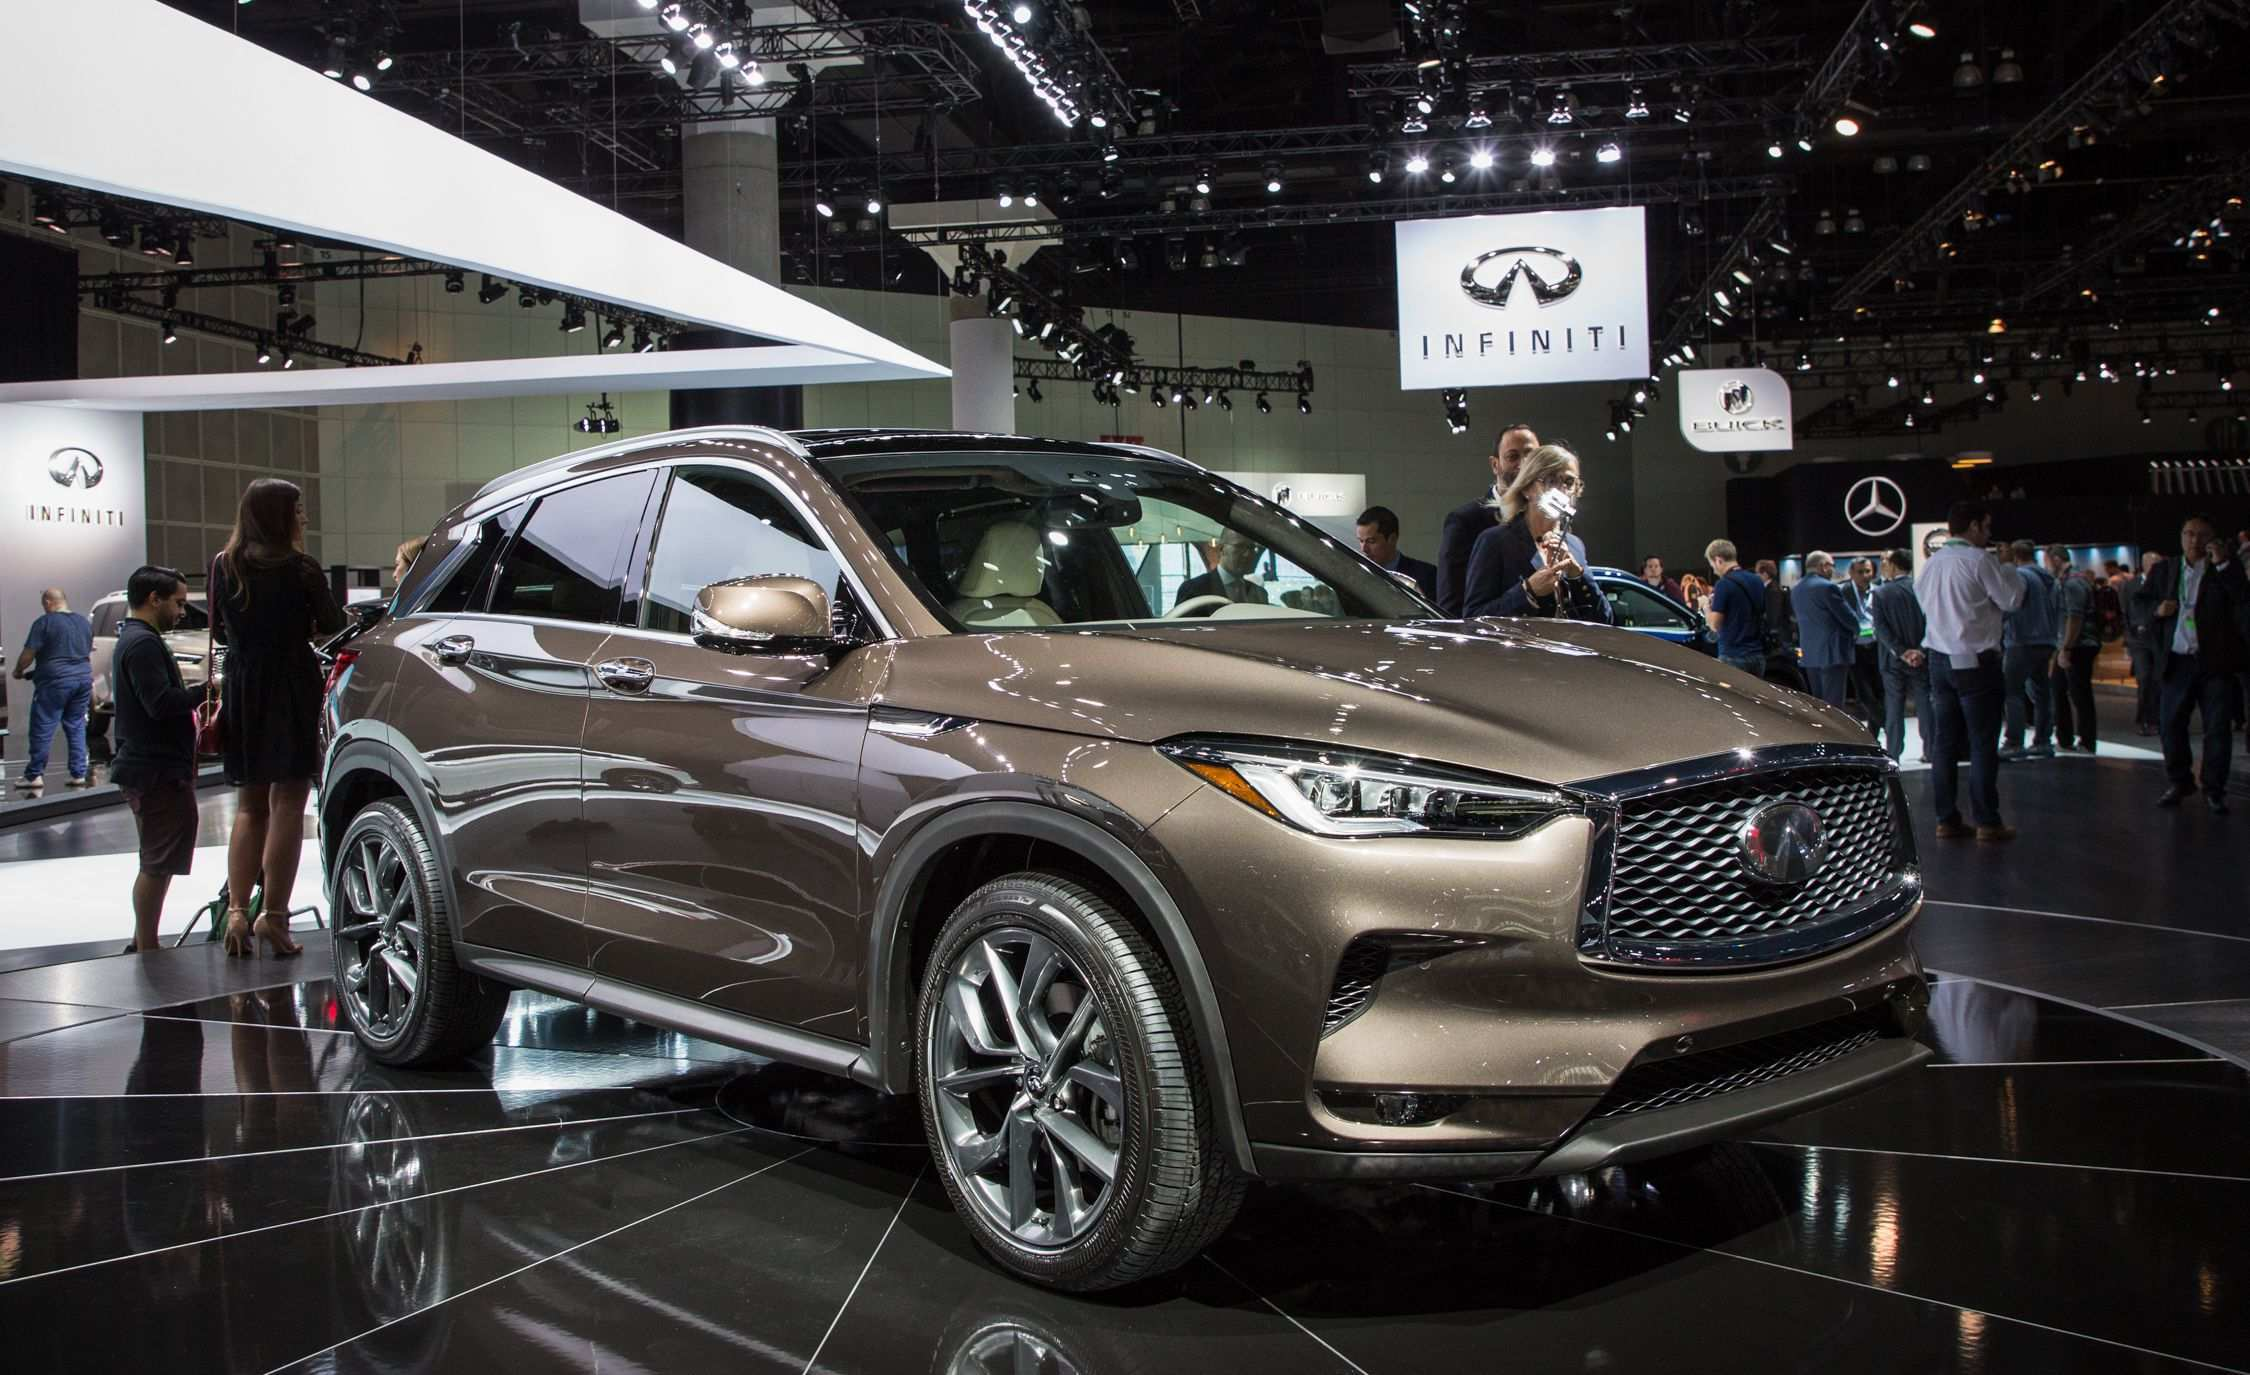 15 Gallery of 2019 Infiniti Qx50 Dimensions Style for 2019 Infiniti Qx50 Dimensions